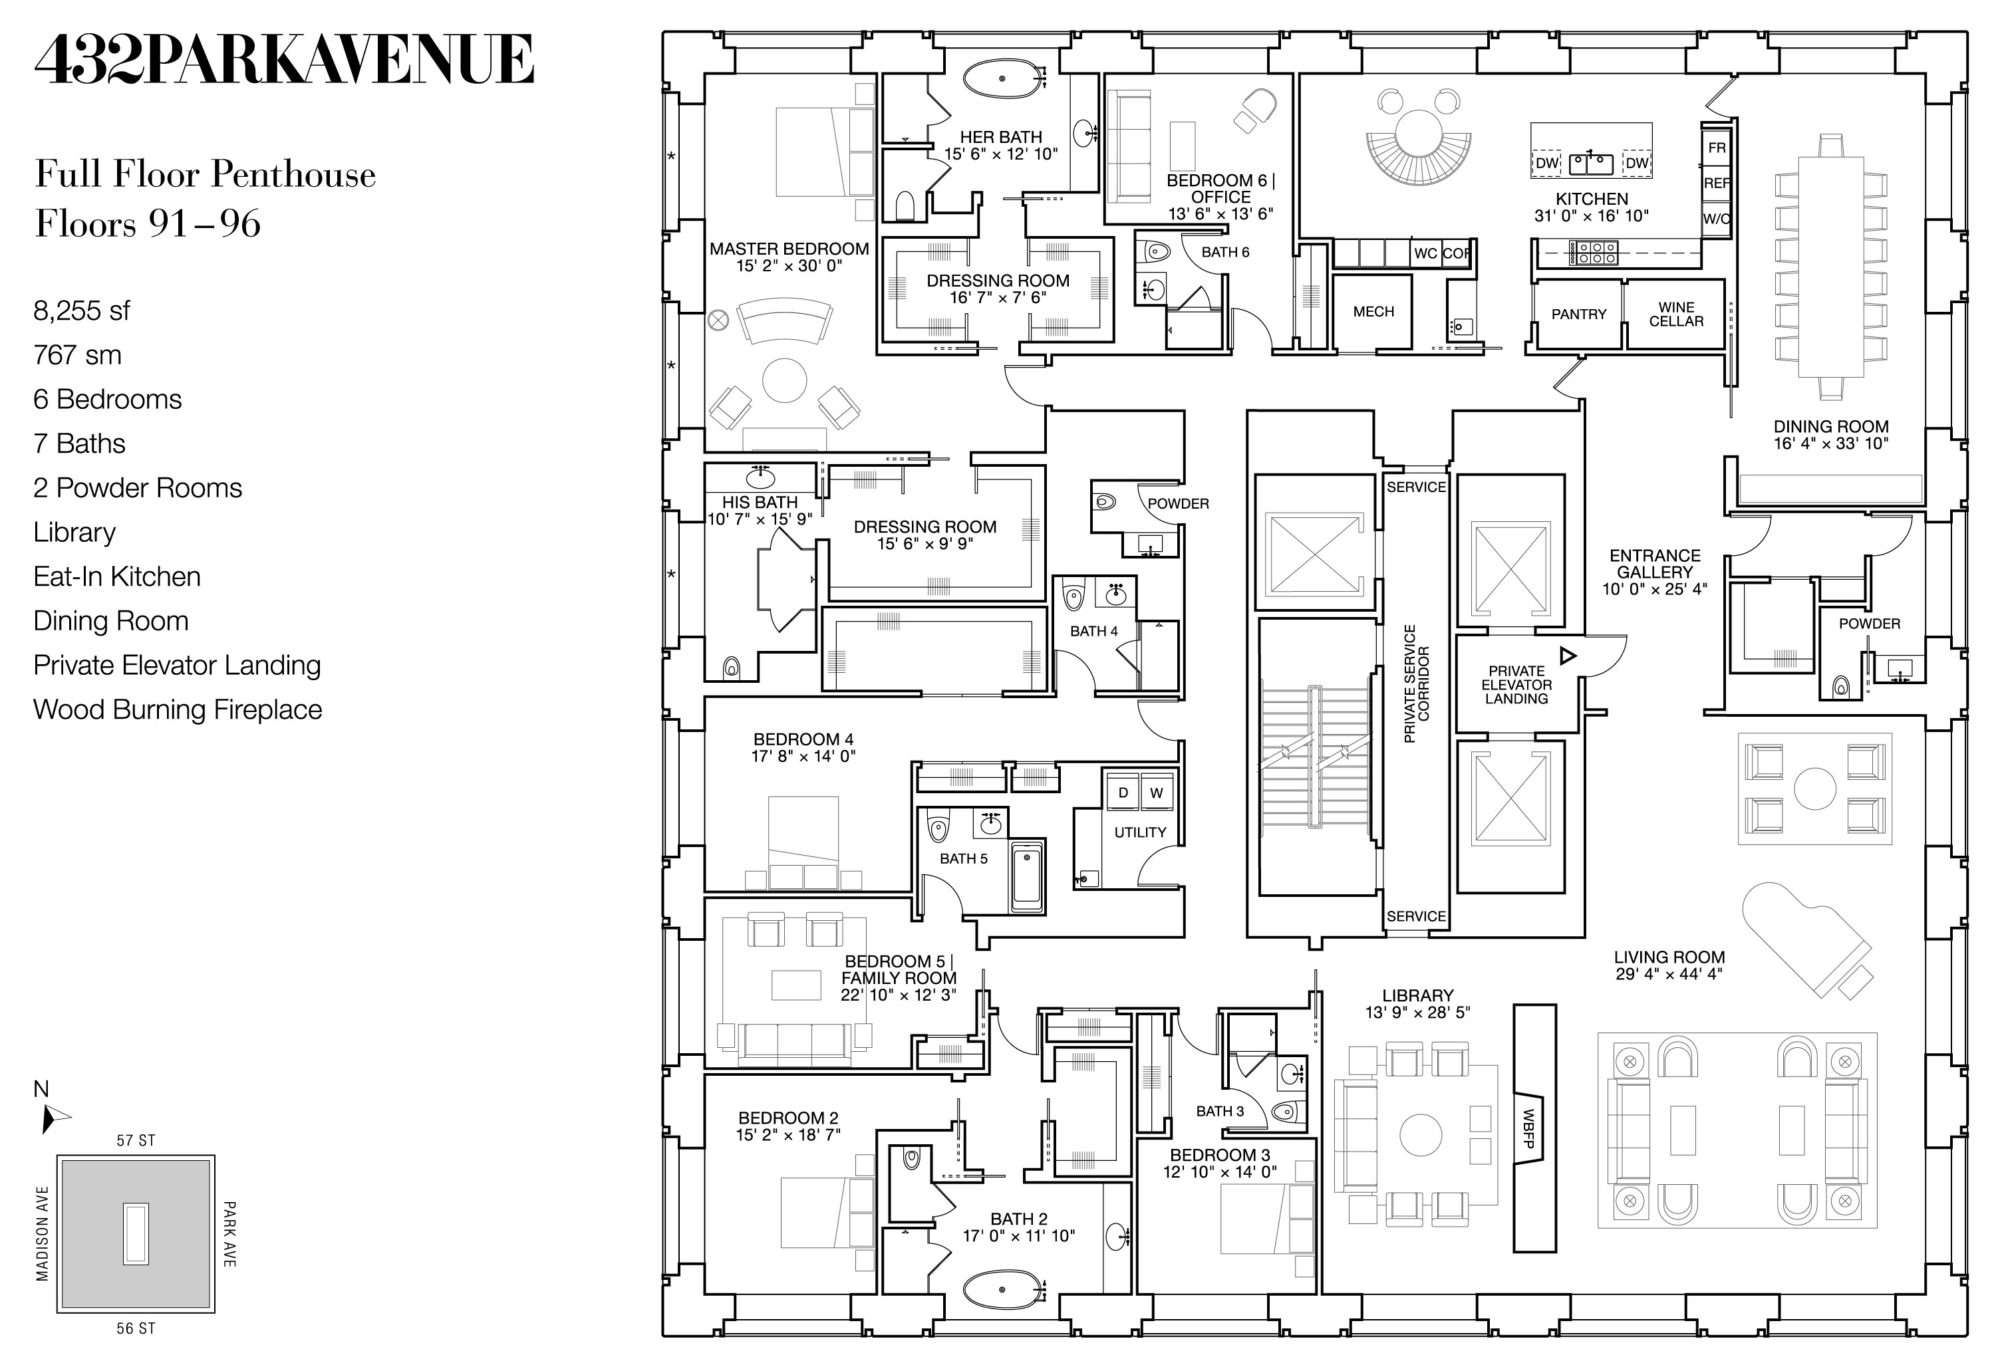 Glorious 432 Park Avenue Skyscraper In New York Usa on North Avenue Apartments Floor Plan